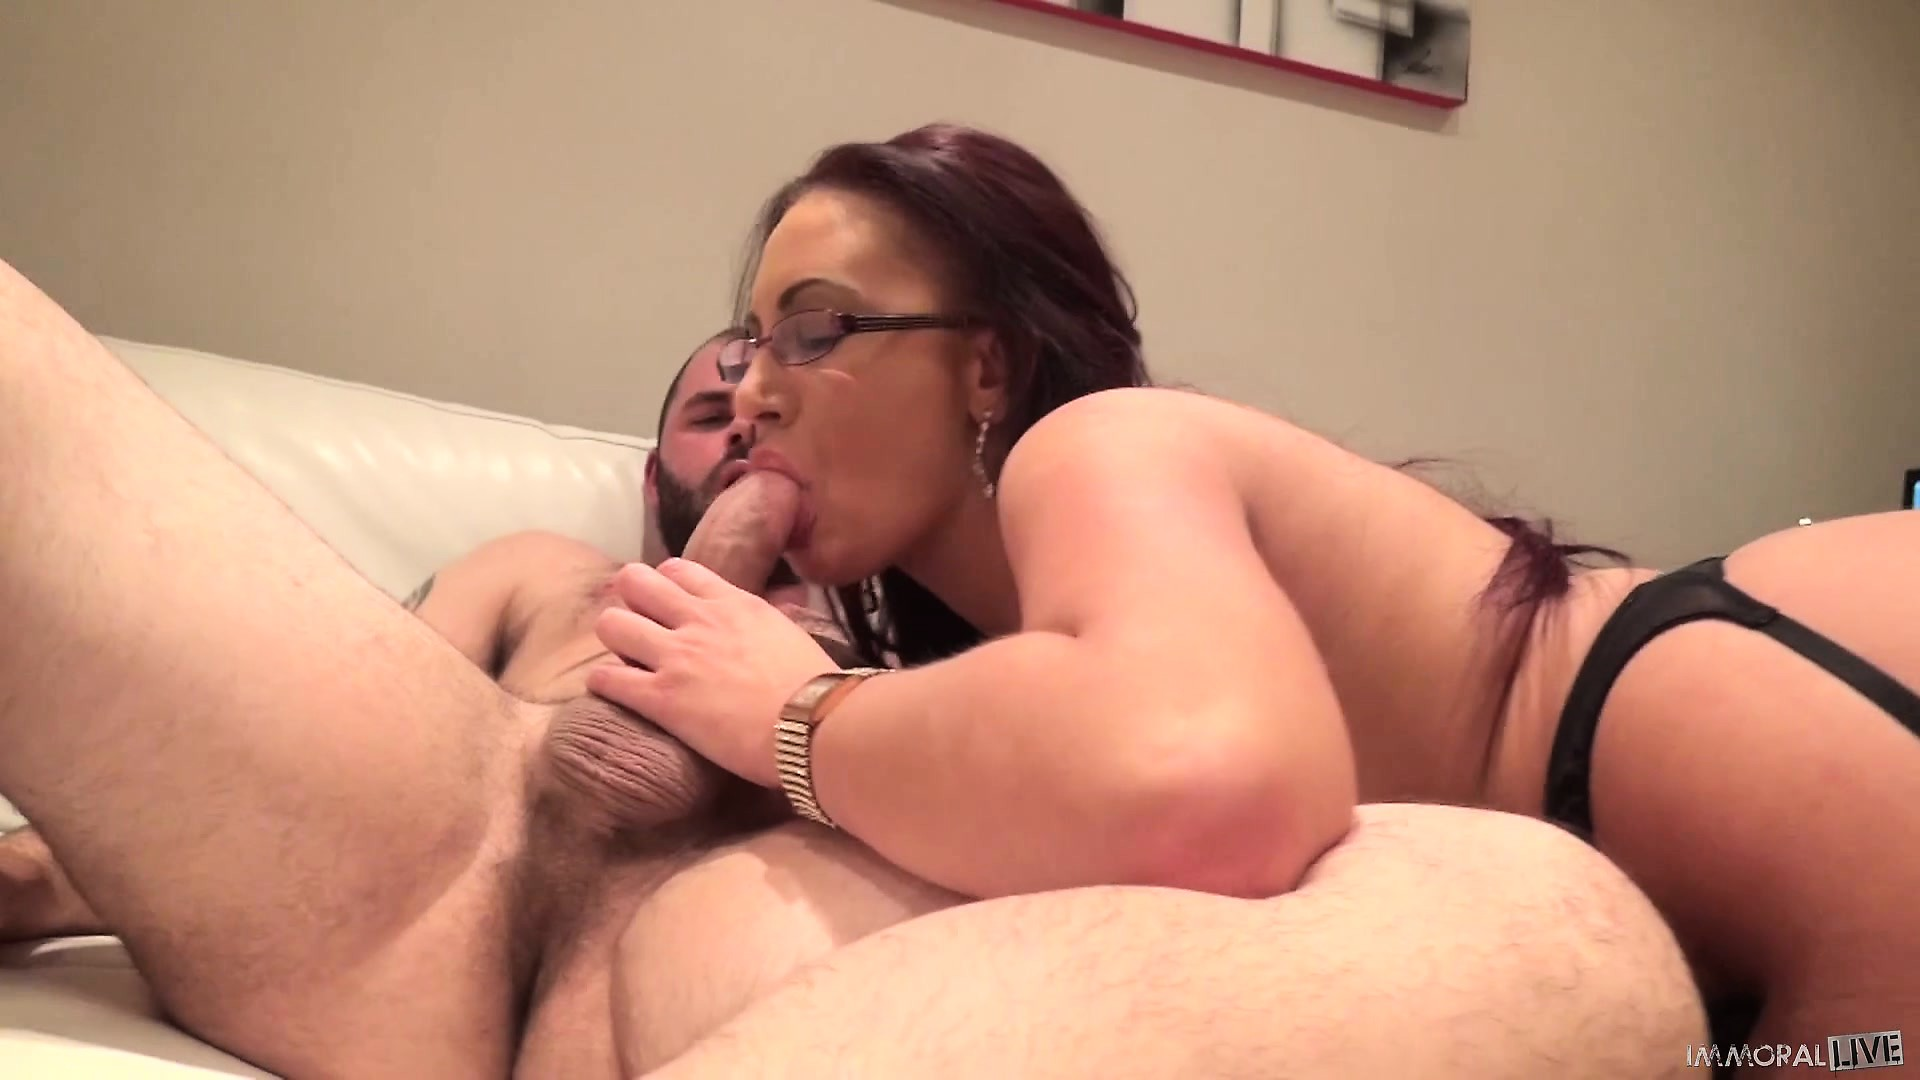 Sex video each other